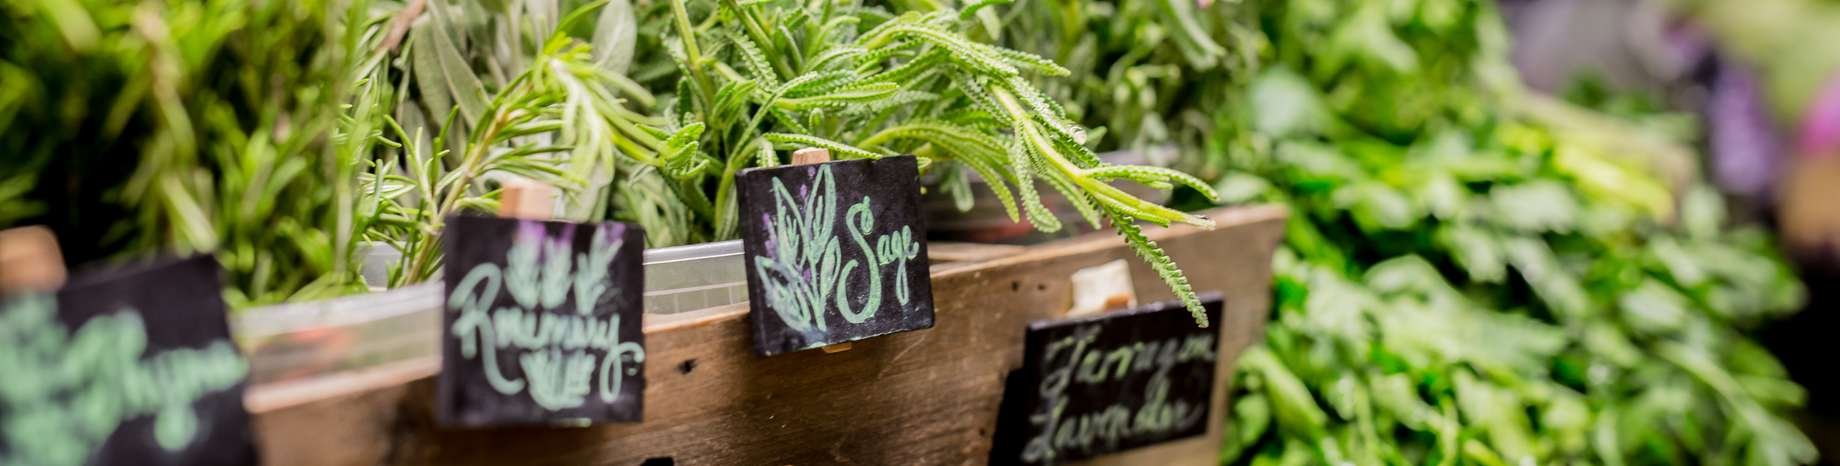 Farmstand Footer